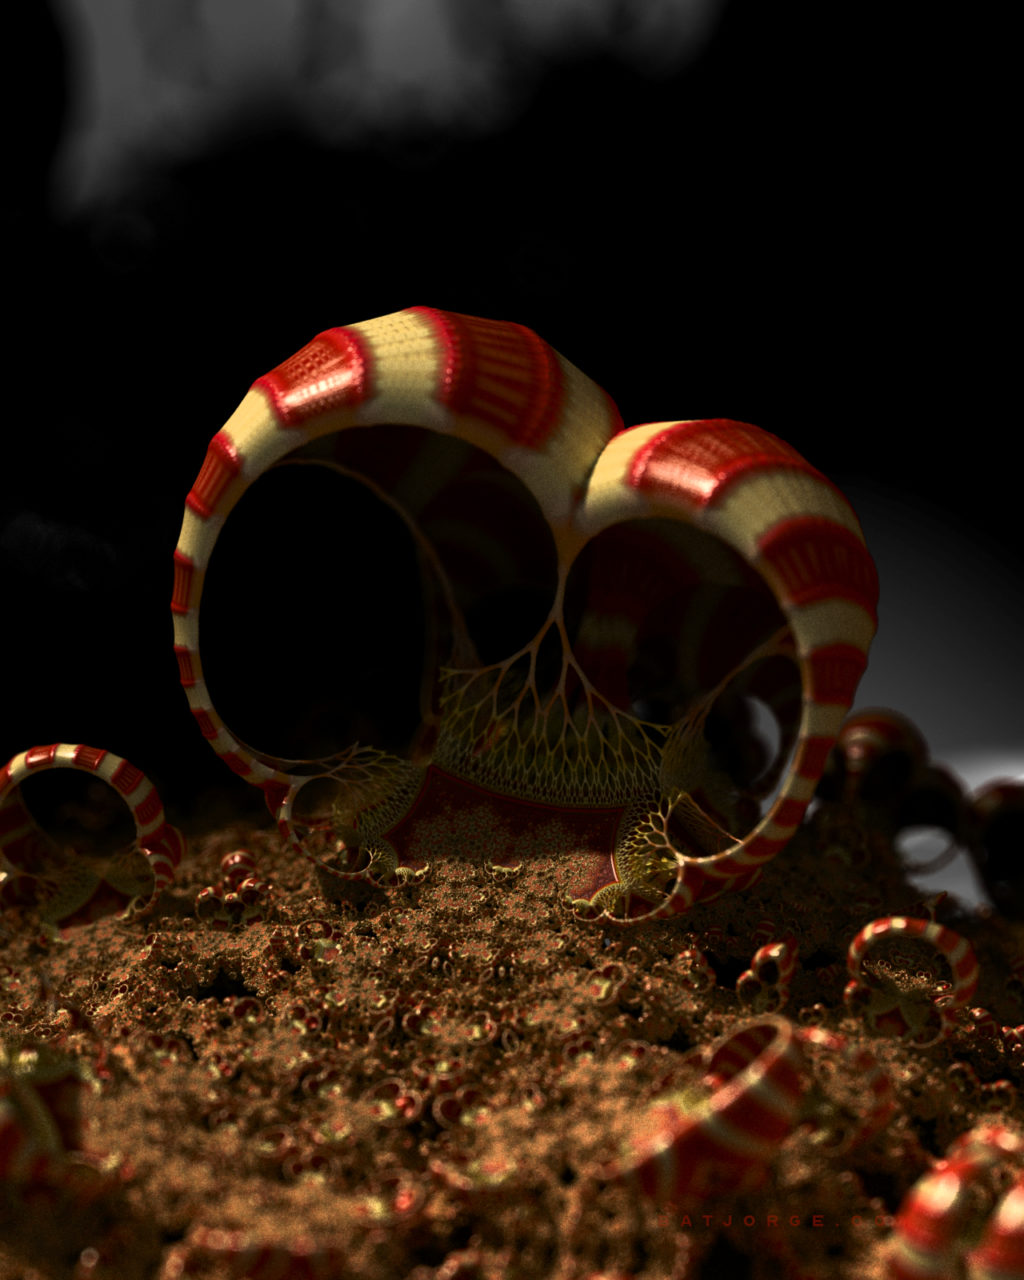 3d fractal. organic look. colourful red striped mushroom-look shapes